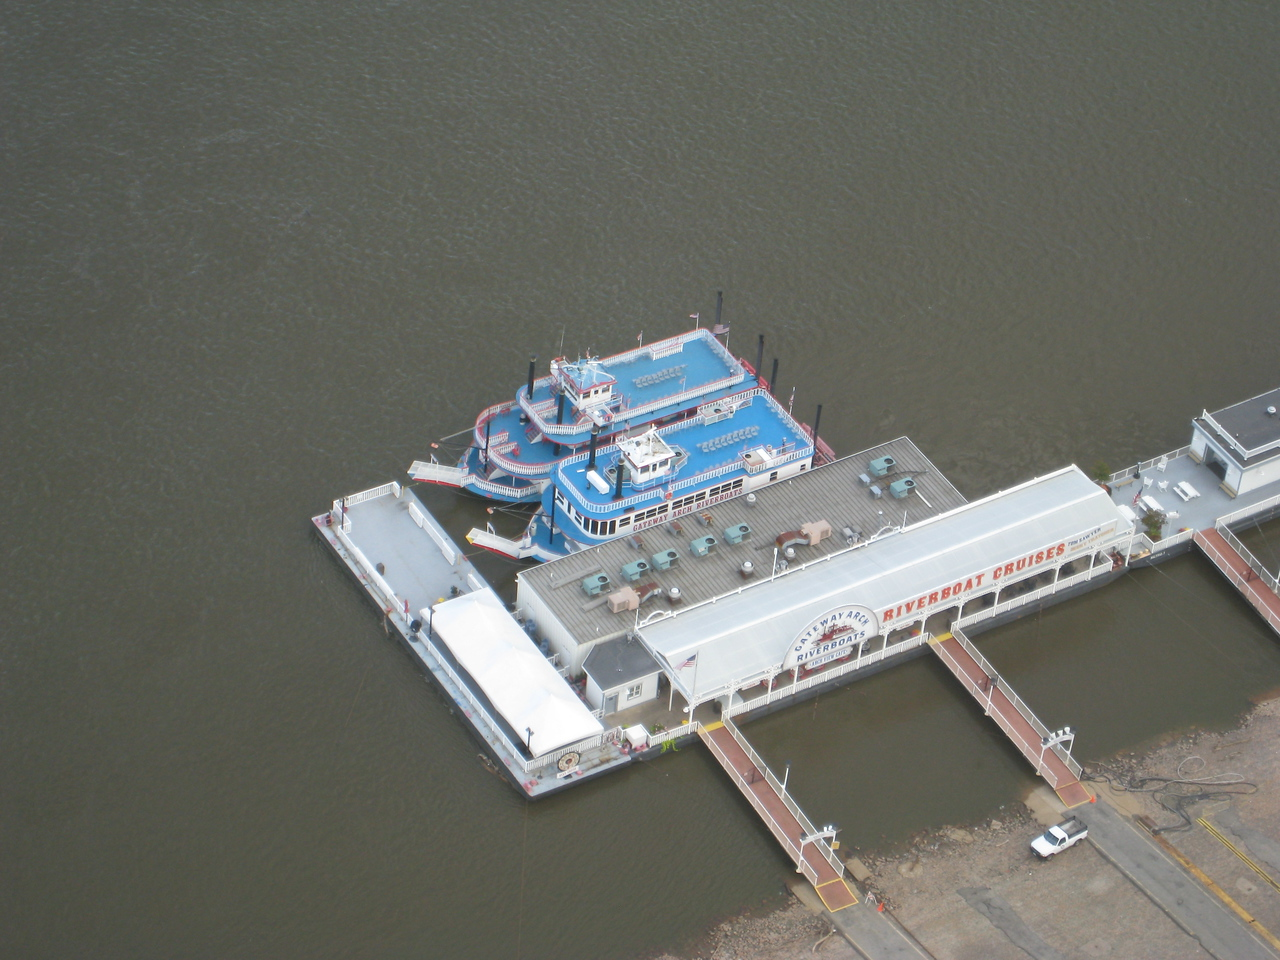 River Boats docked near the St. Louis arch